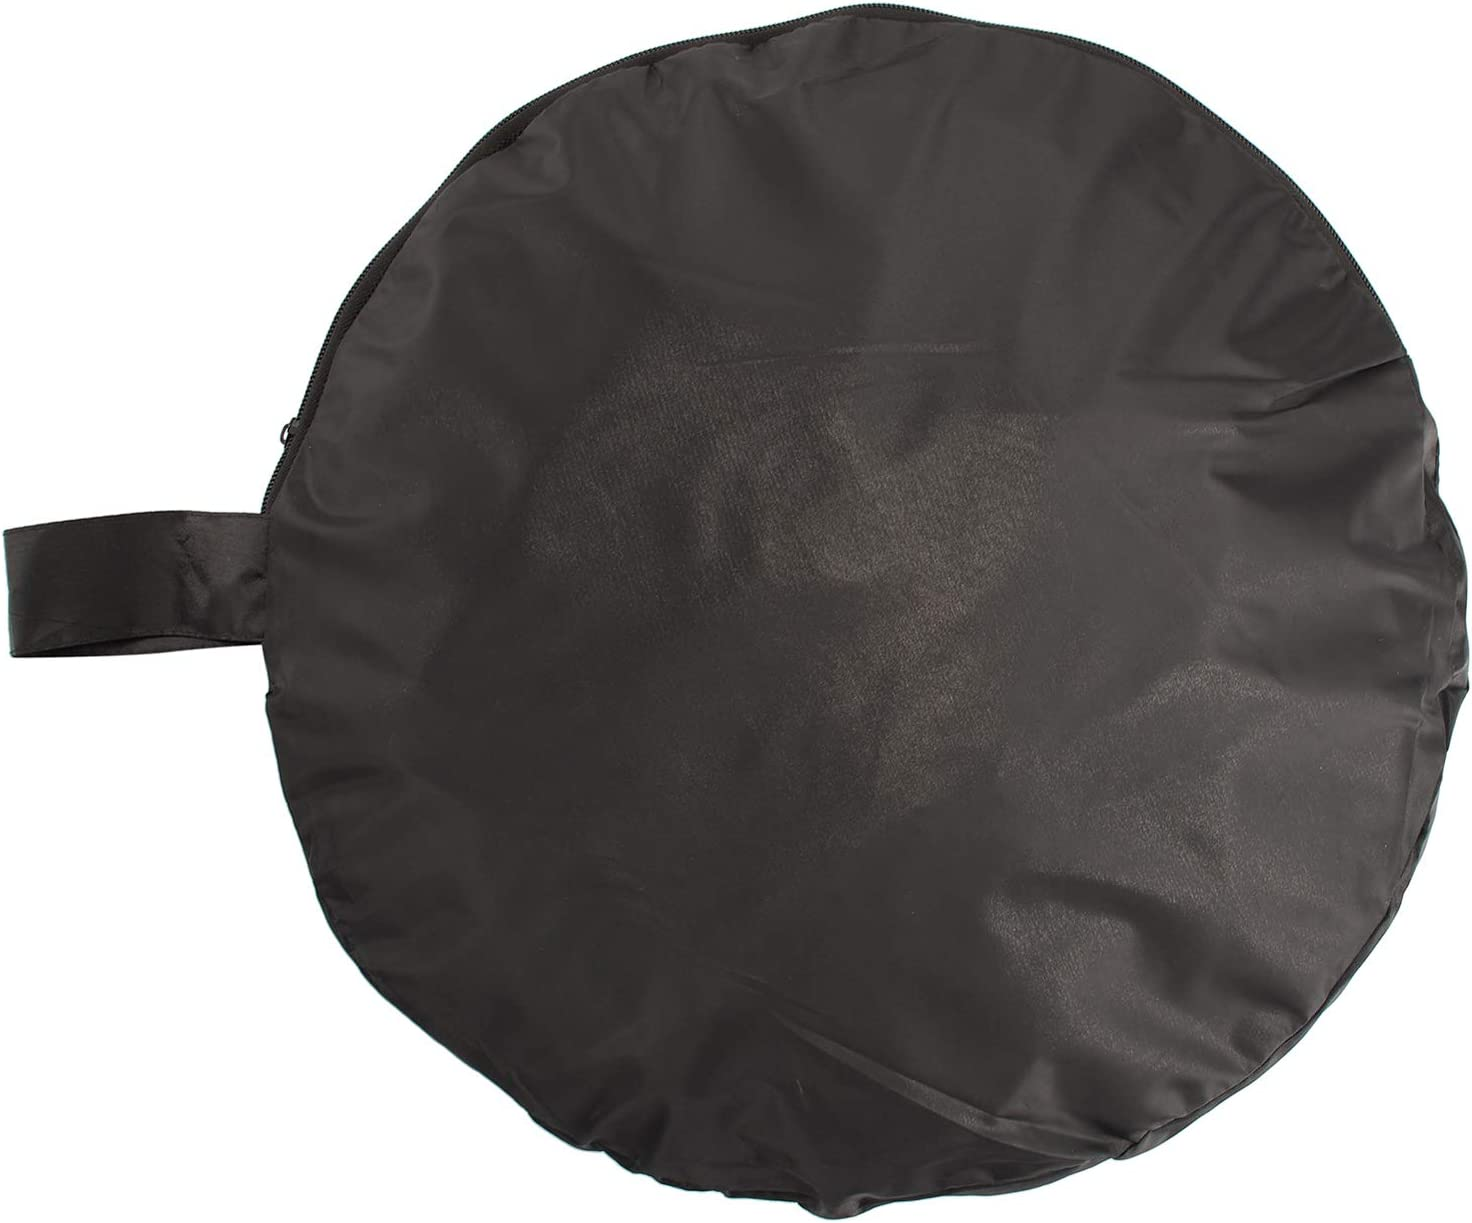 5 in 1 Collapsible Multi-Disc Light Photography Reflector with Bag - 43 inch